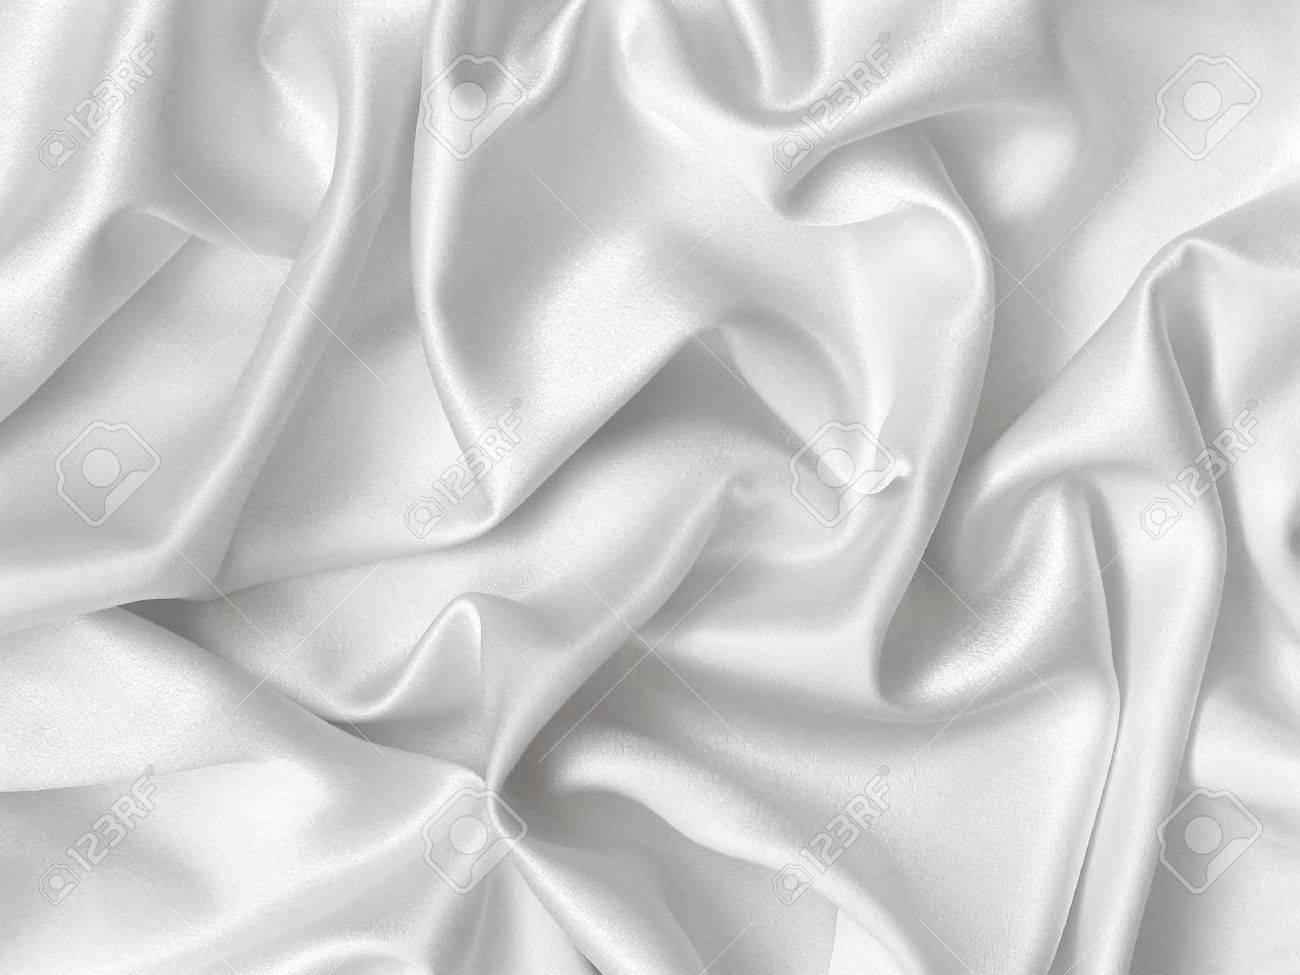 White bed sheets texture - Bed Sheet Elegant Folds Of White Silk Stock Photo